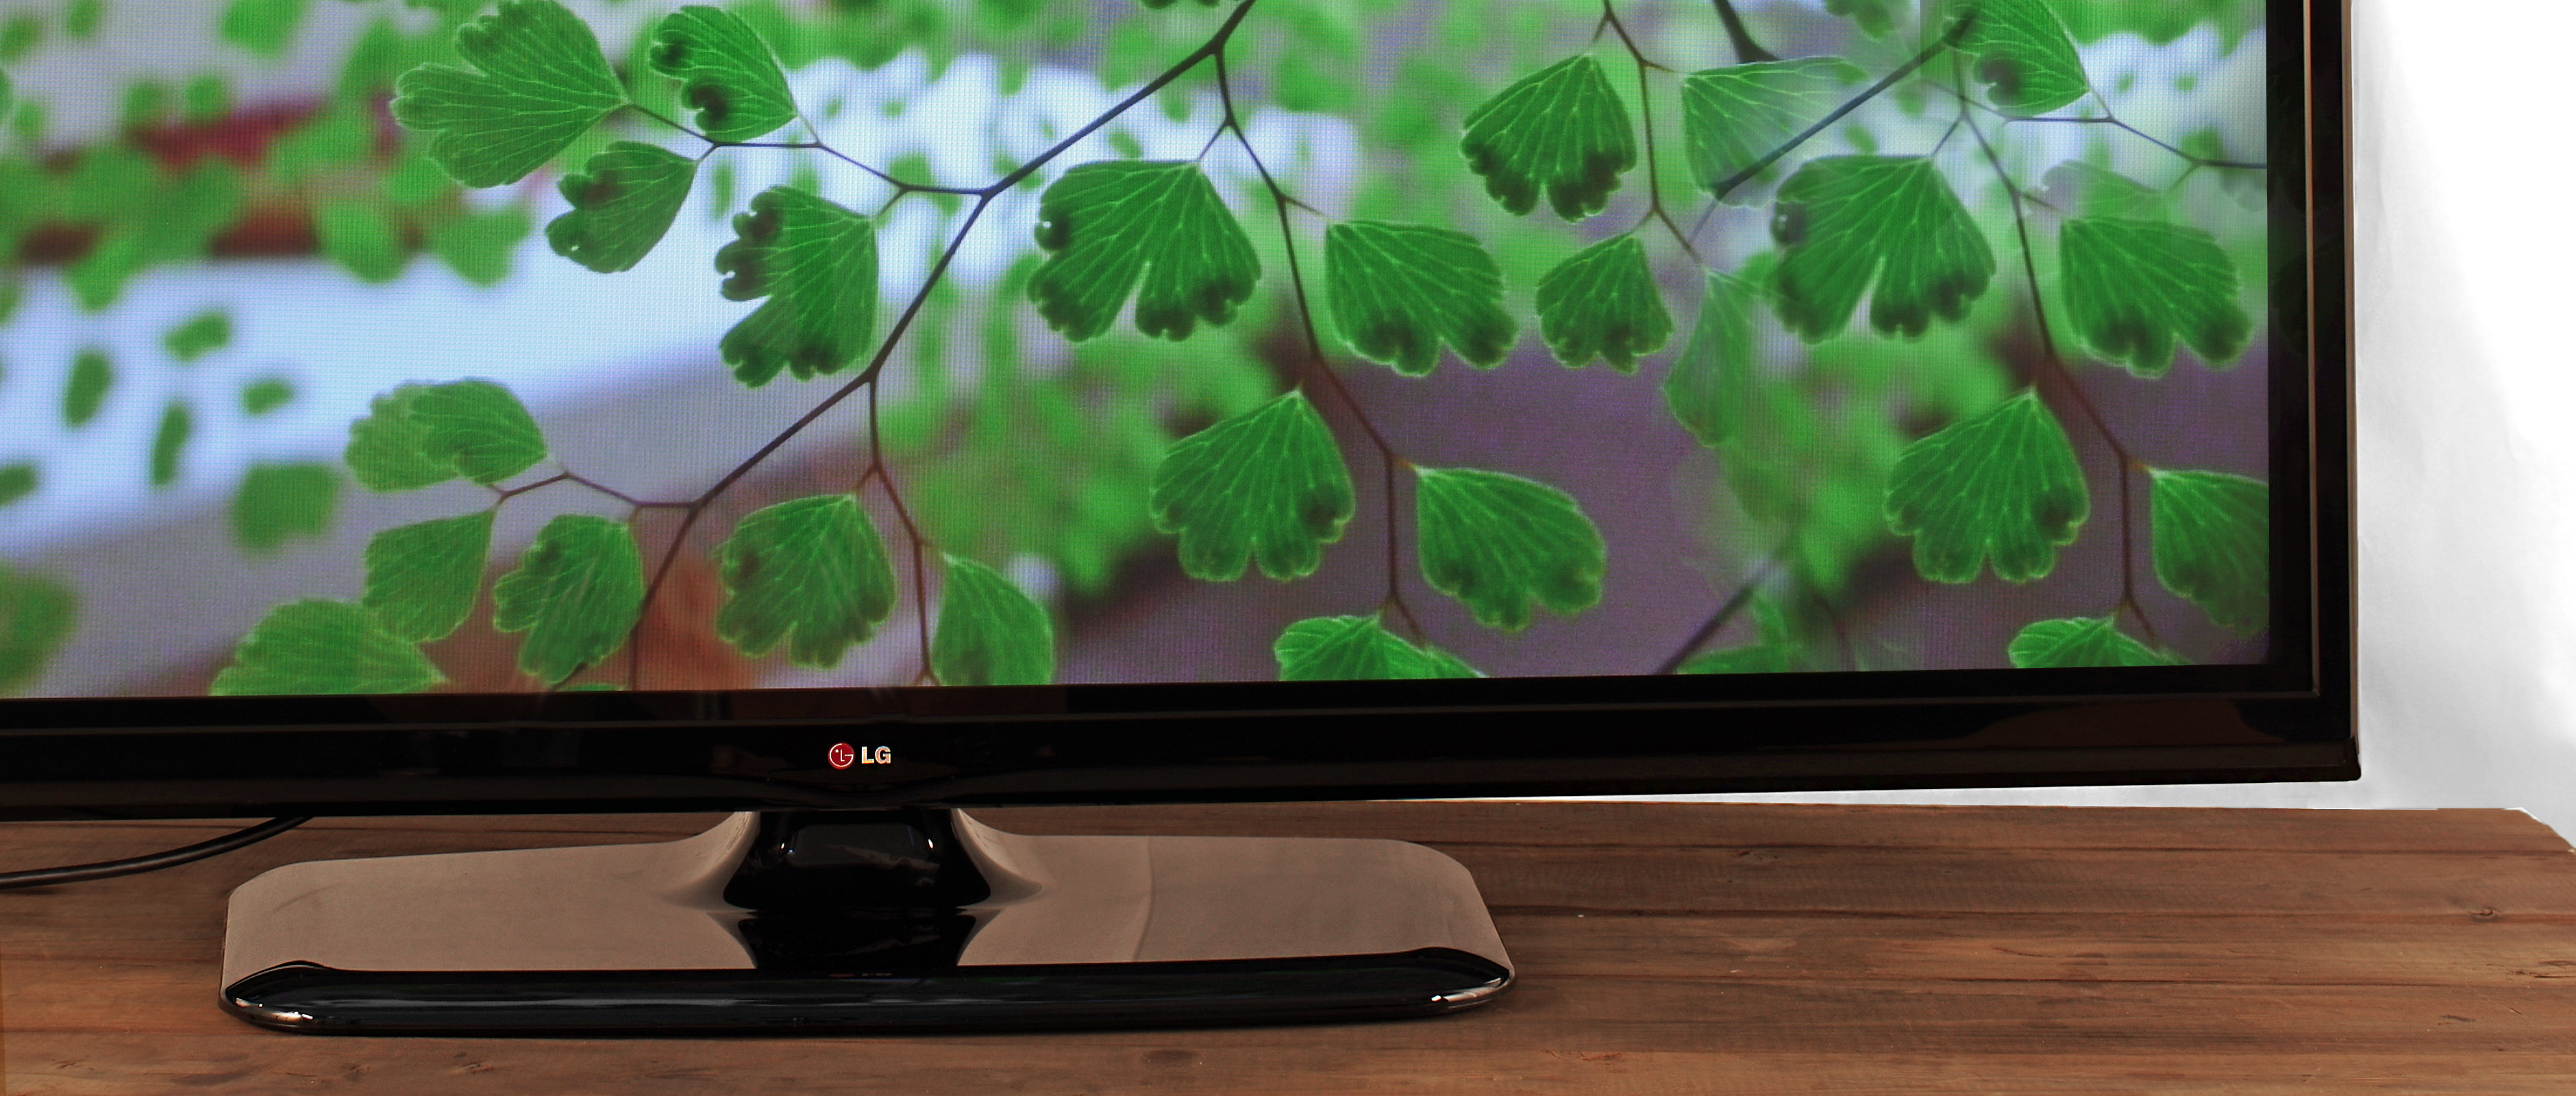 The LG 50PB6600 plasma TV